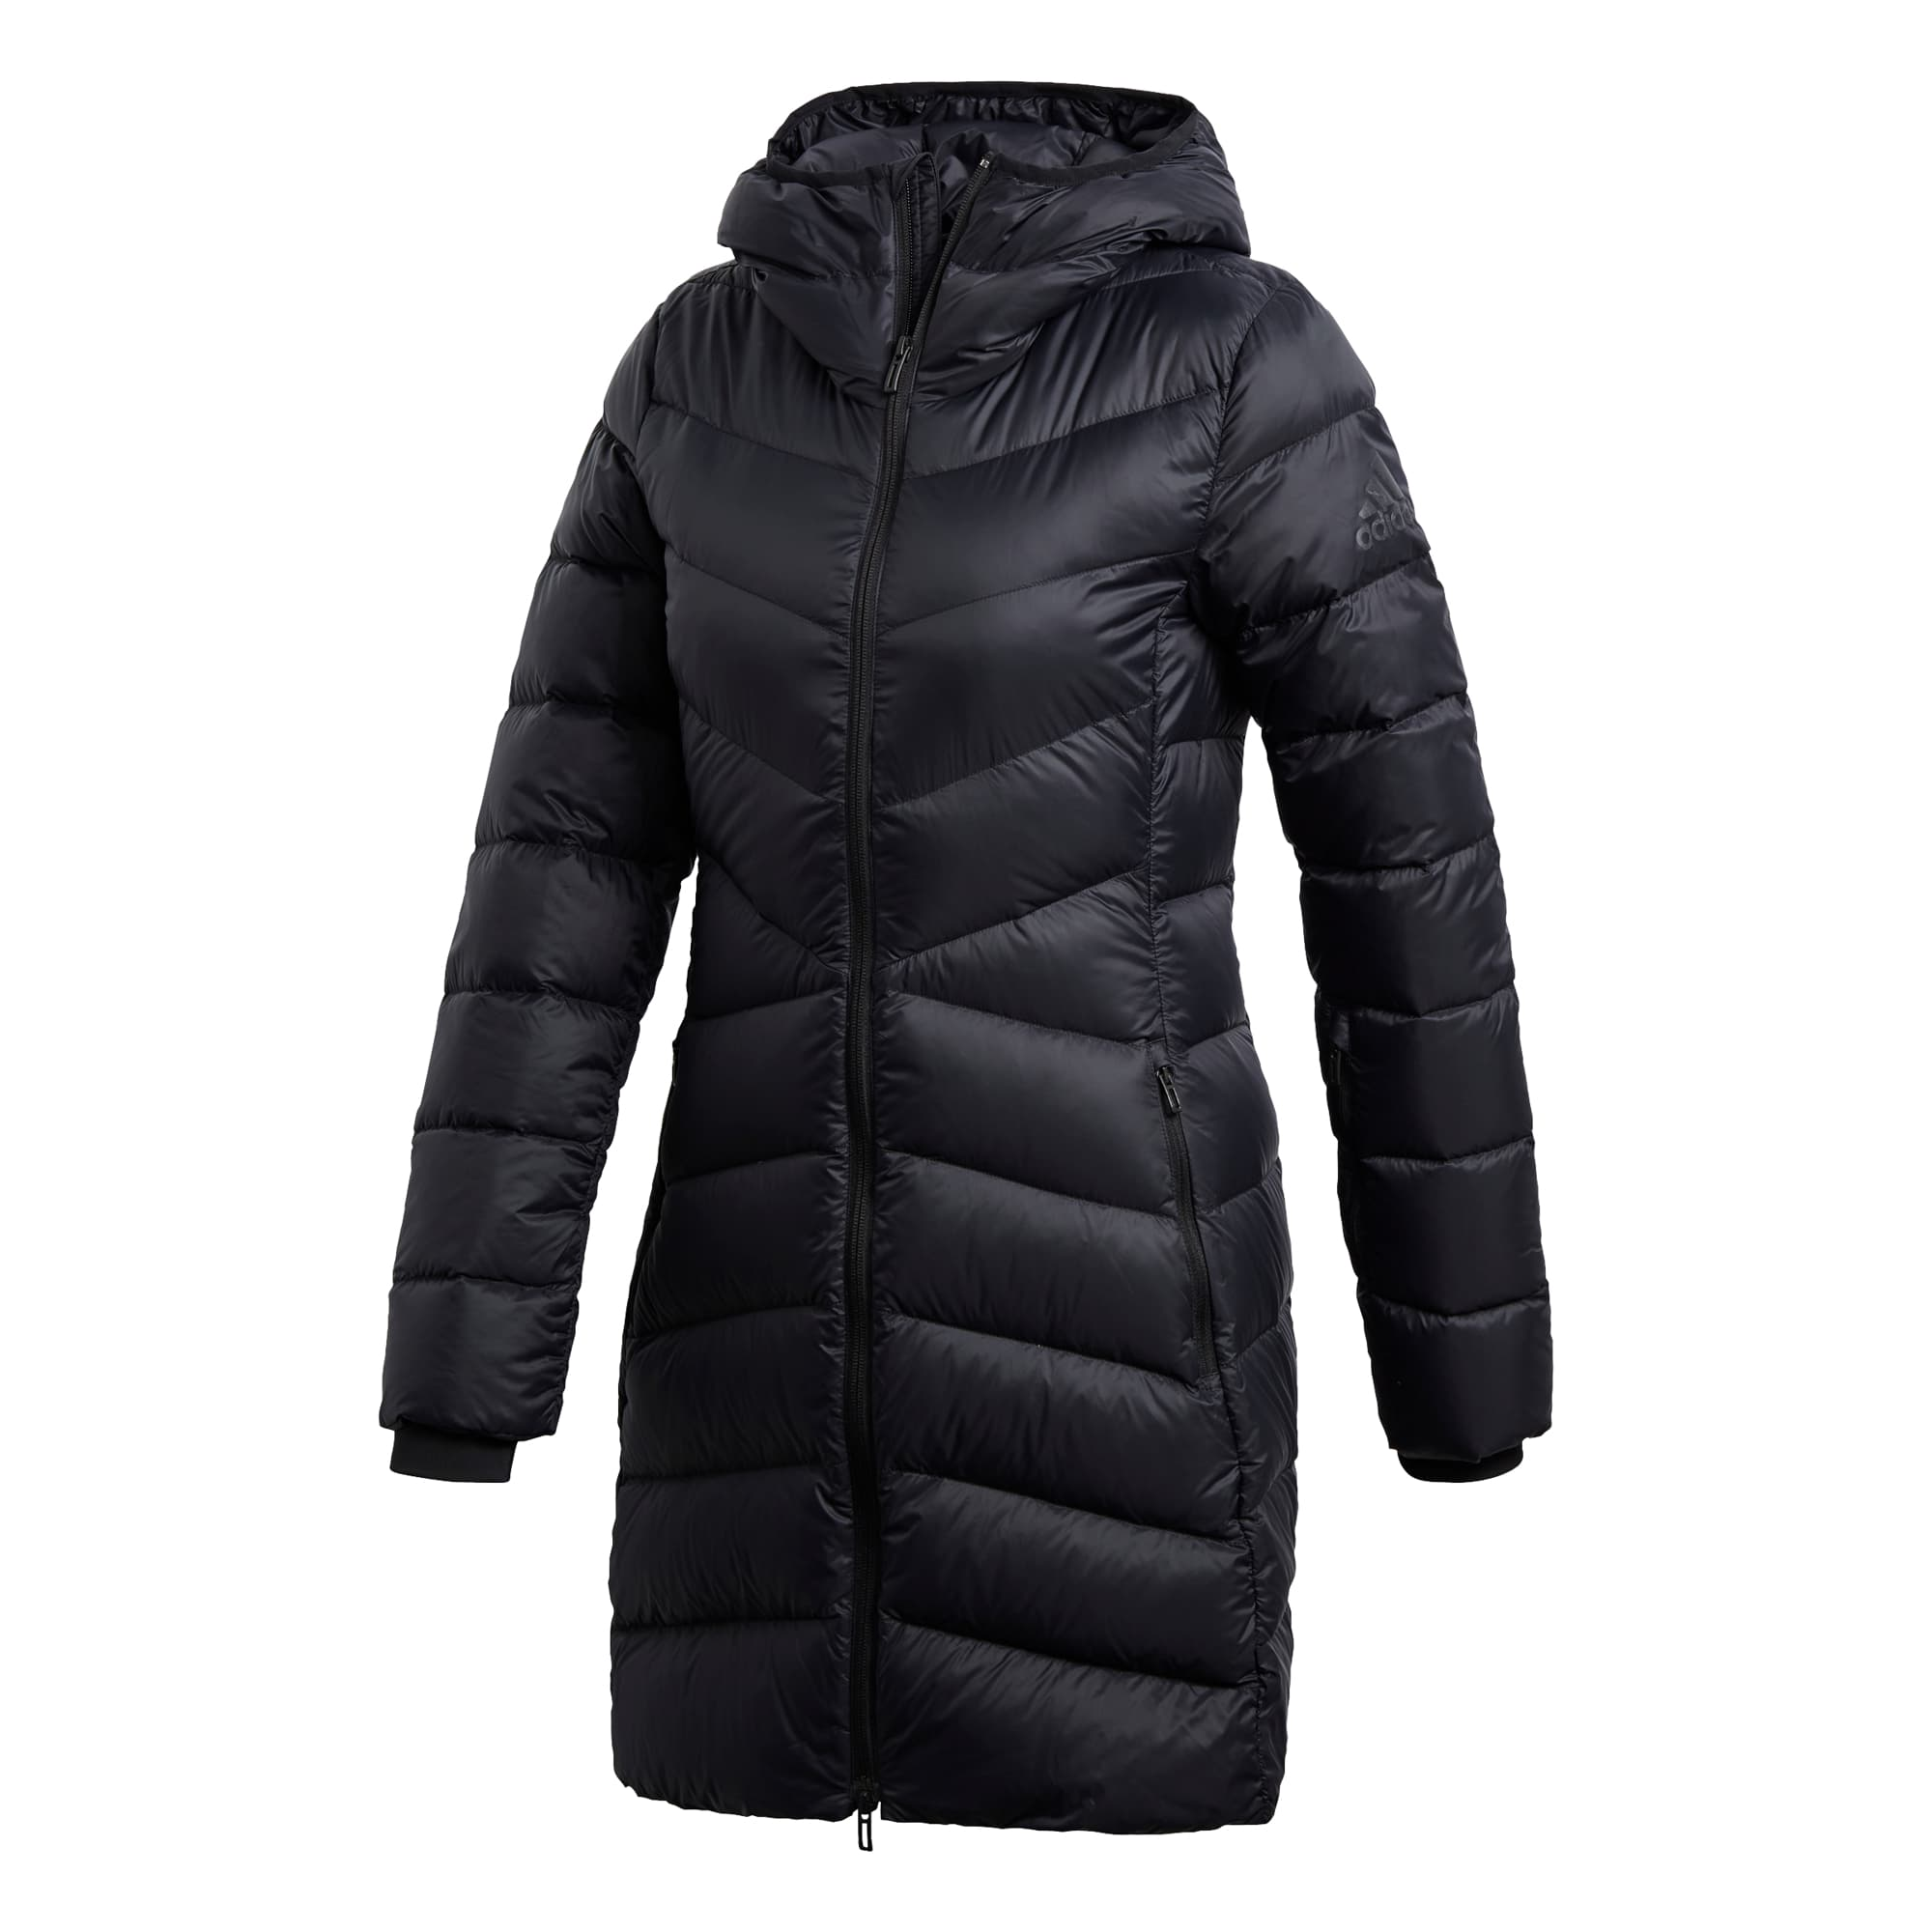 Women's Cw Nuvic Jacket